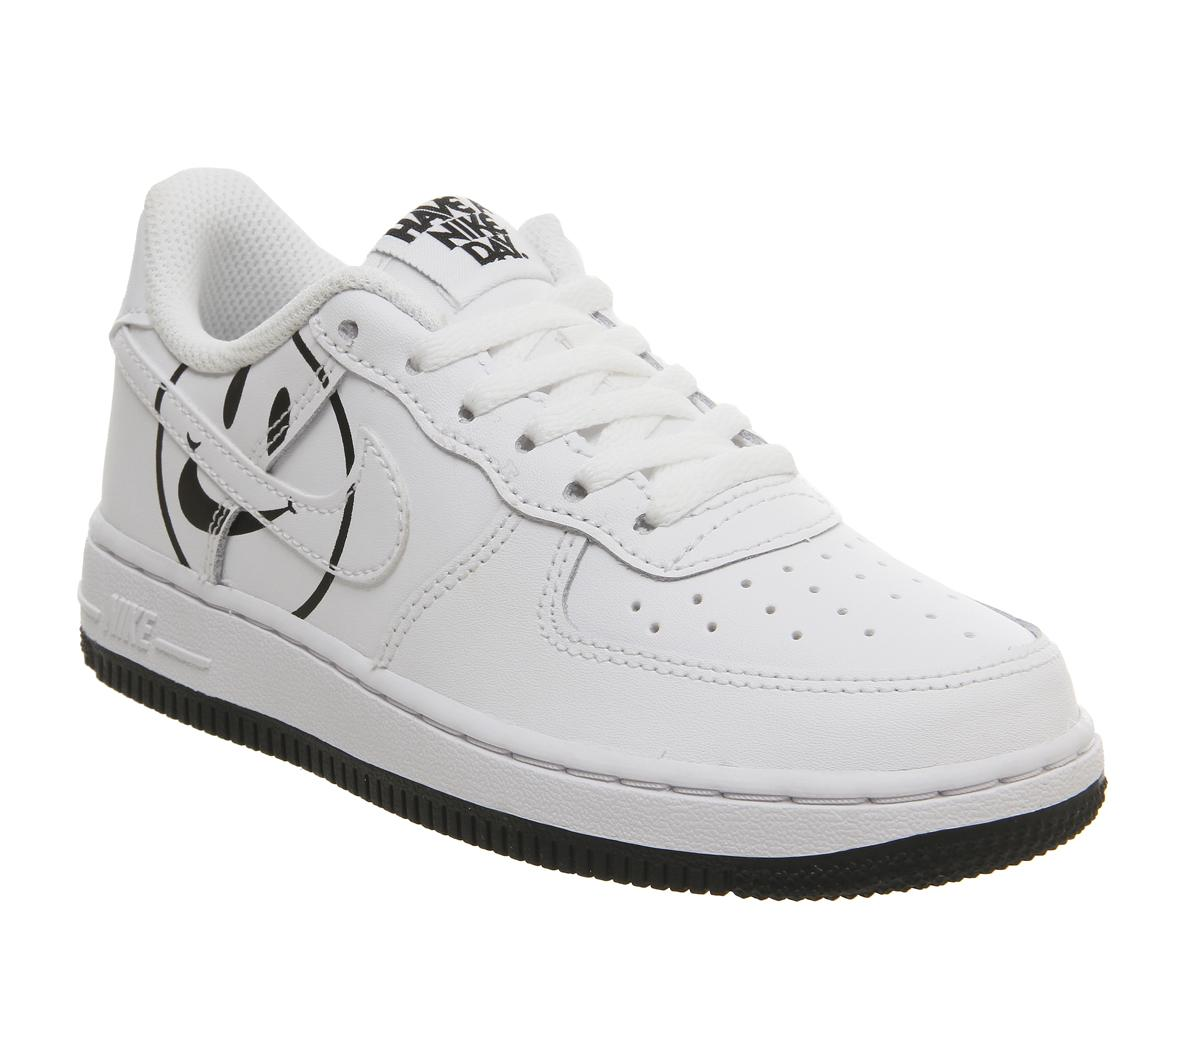 Nike Air Force 1 Lv8 Ps Trainers White